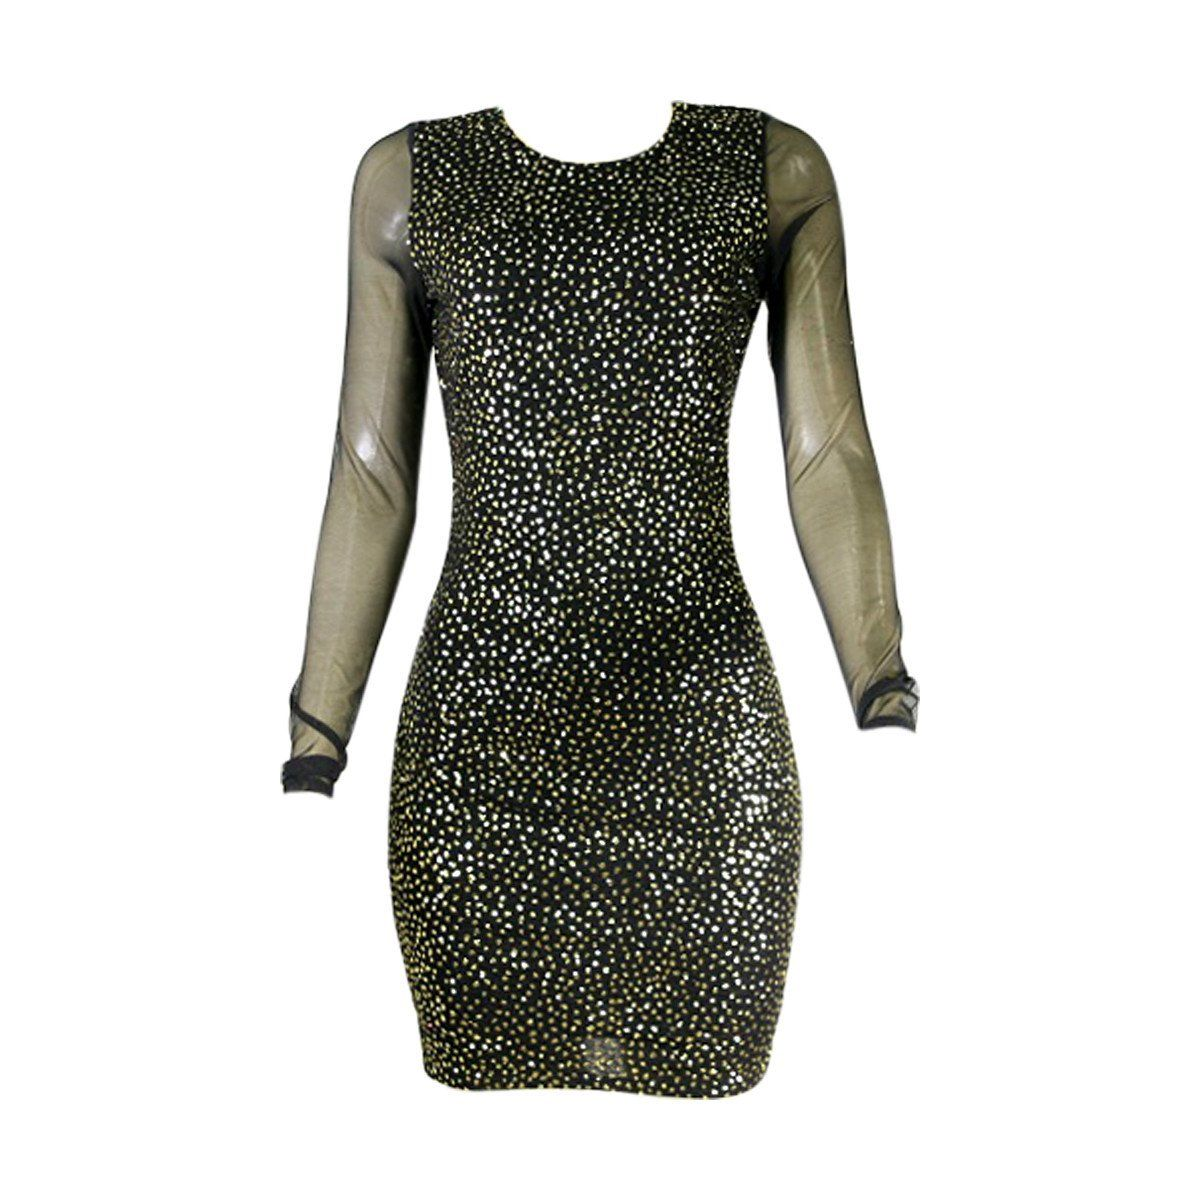 Aa at aa womenue lurex glitter mesh sleeves dress blackgold